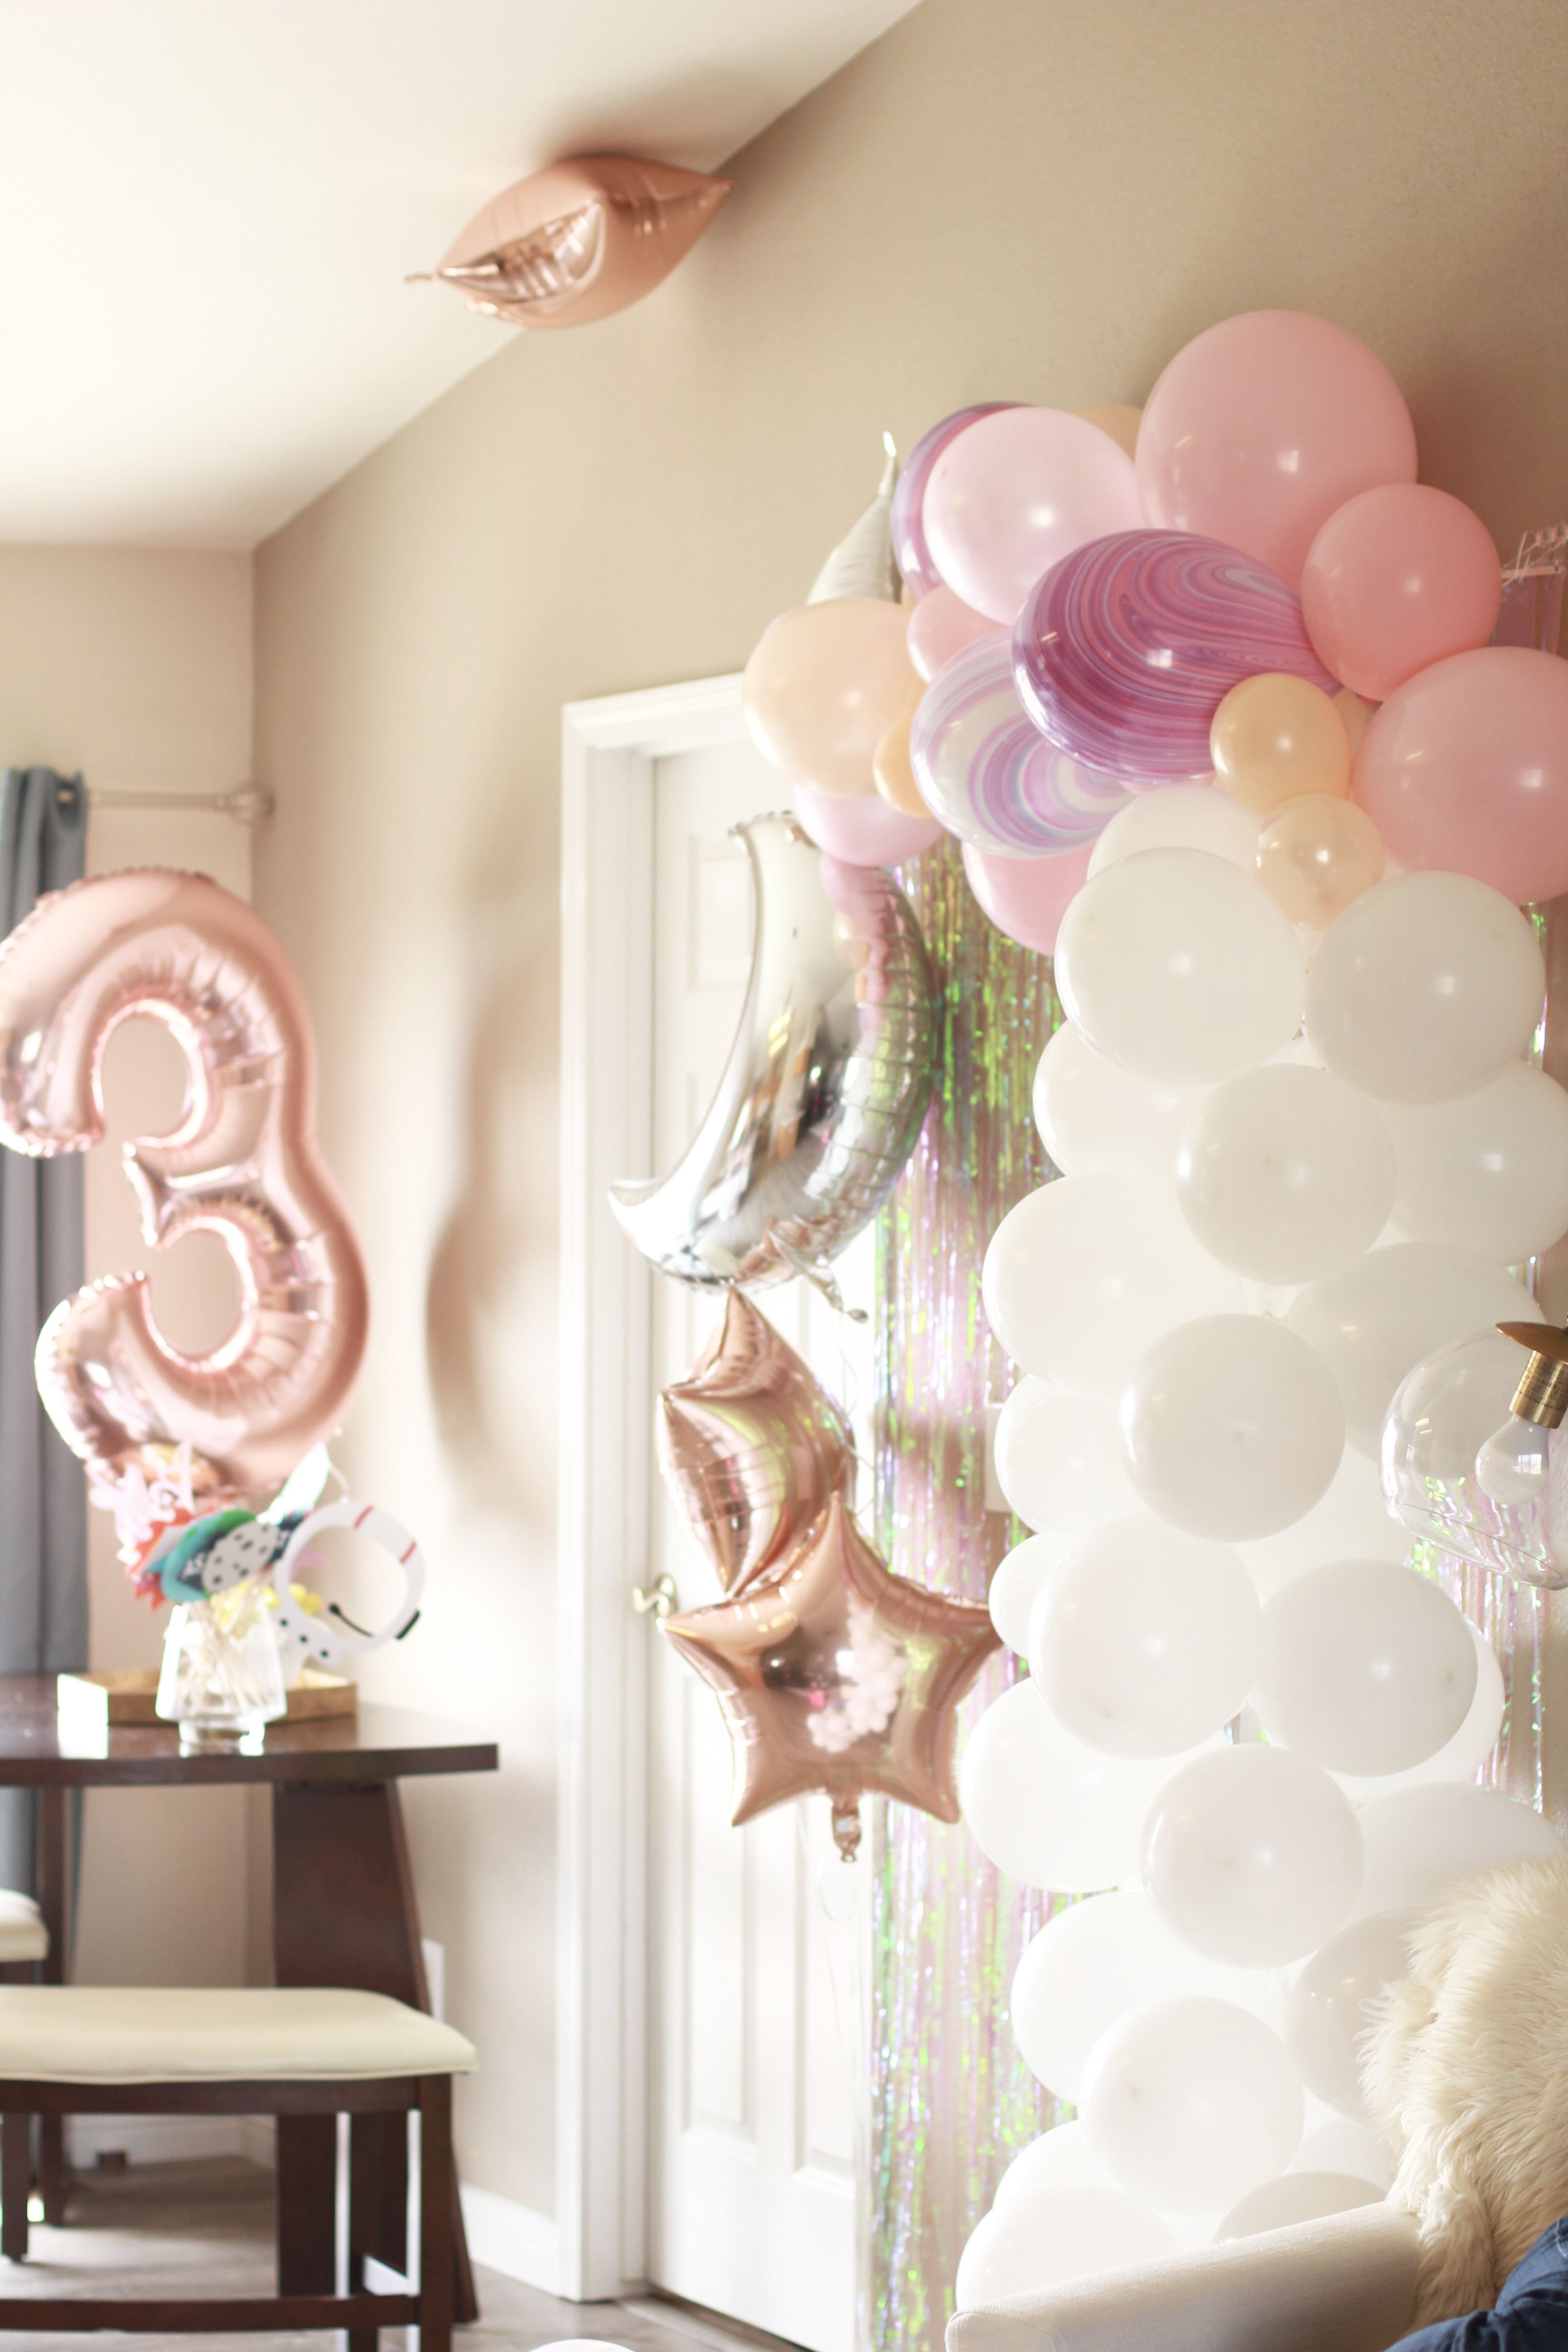 Celebrate From Home Virtual Birthday Party Ideas And Tips Birthday Party At Home 3rd Birthday Party For Girls Birthday Decorations At Home